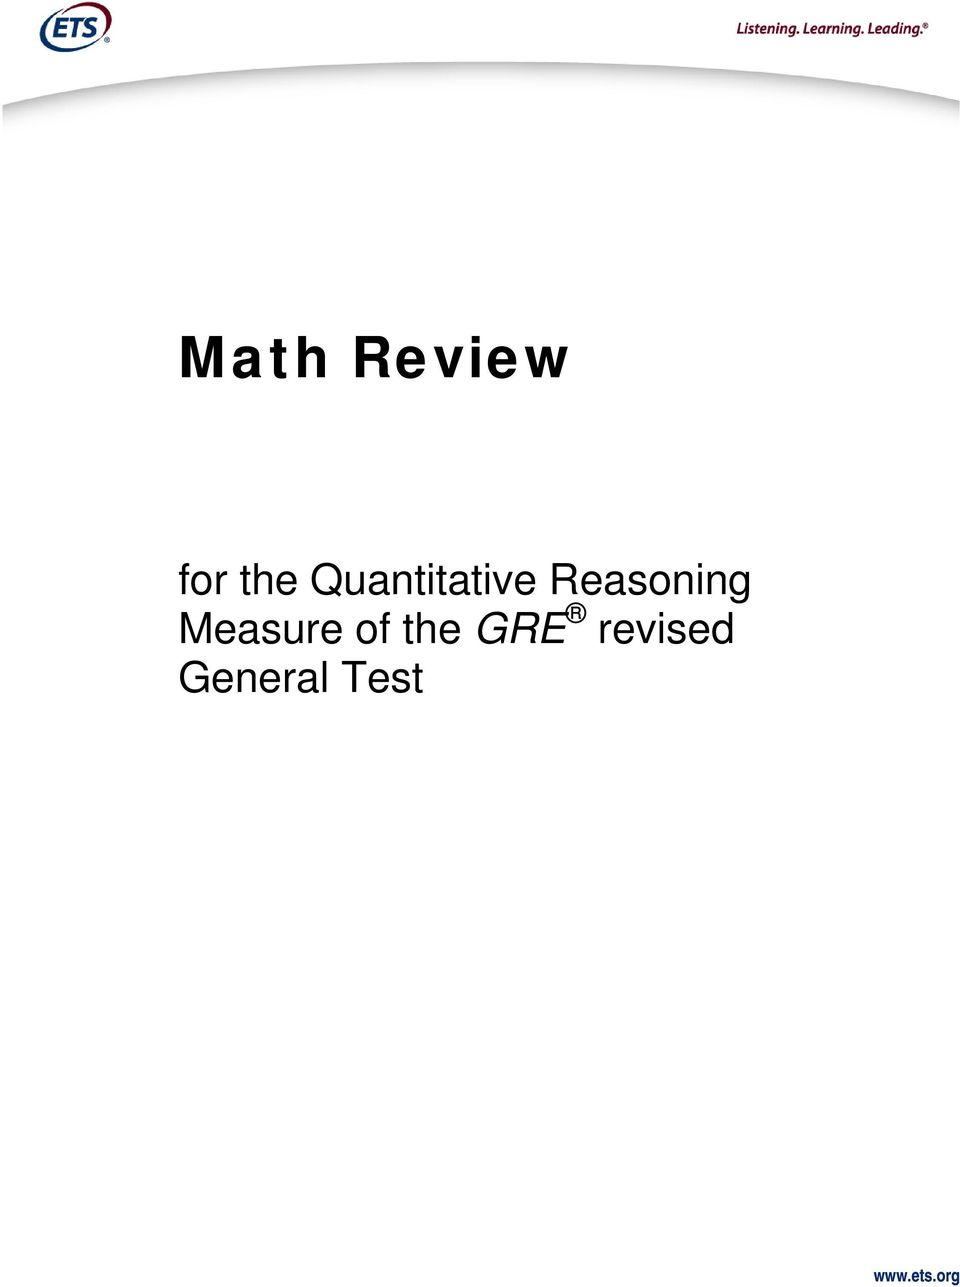 Measure of the GRE